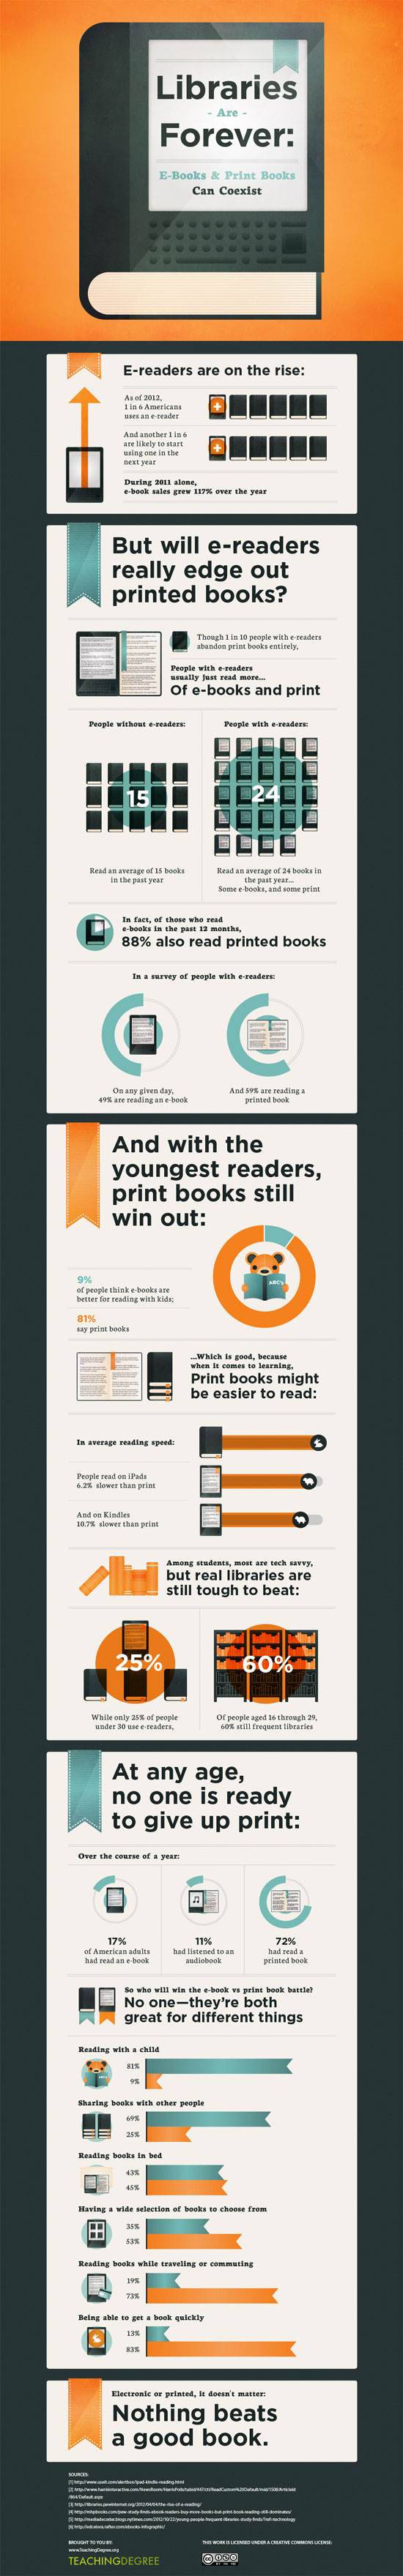 Print vs. Ebook infographic